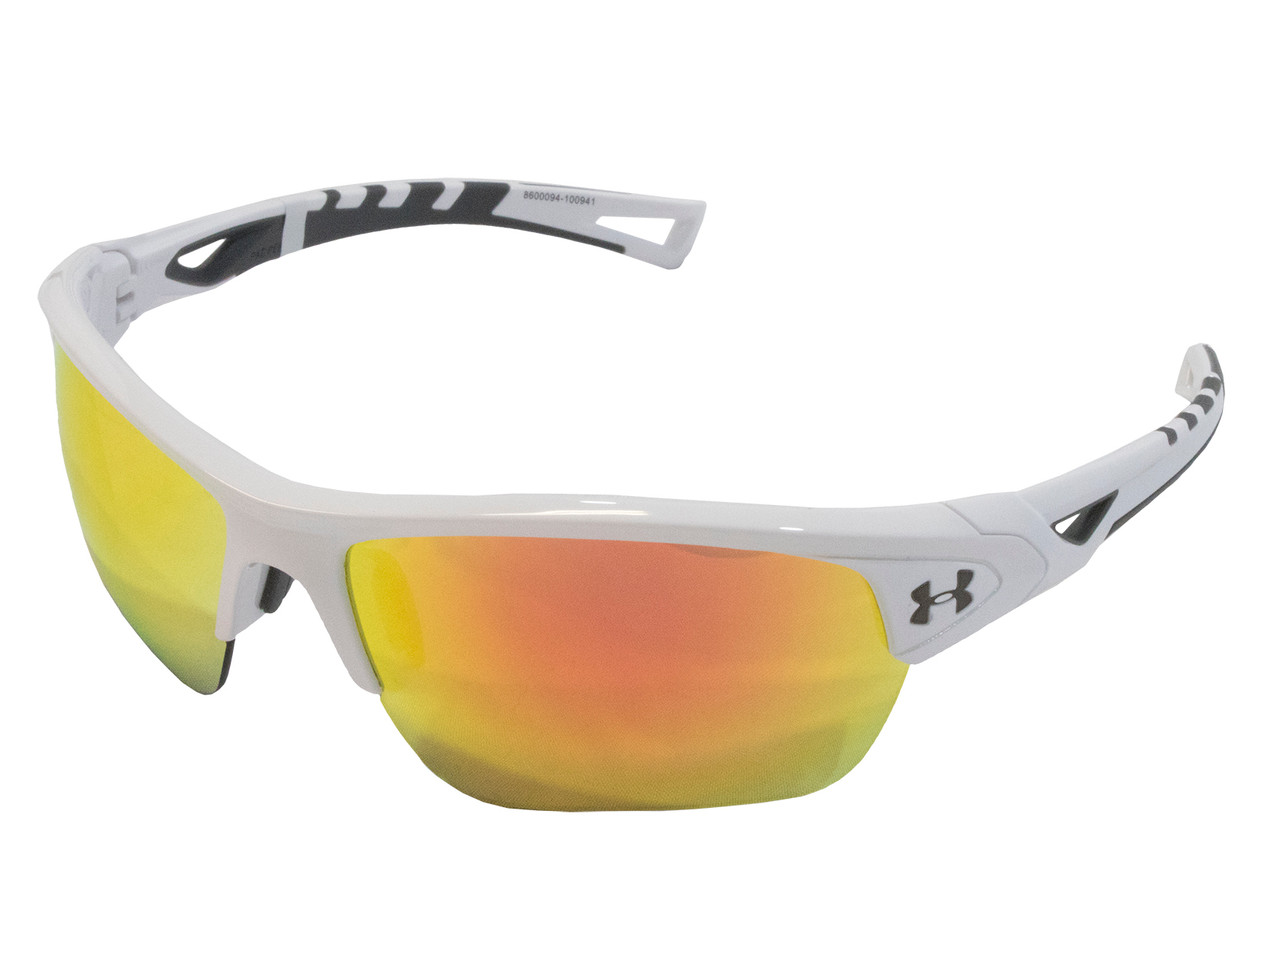 0afbb37653 Under Armour Octane Multiflection Sunglasses - Sieverts Sporting Goods